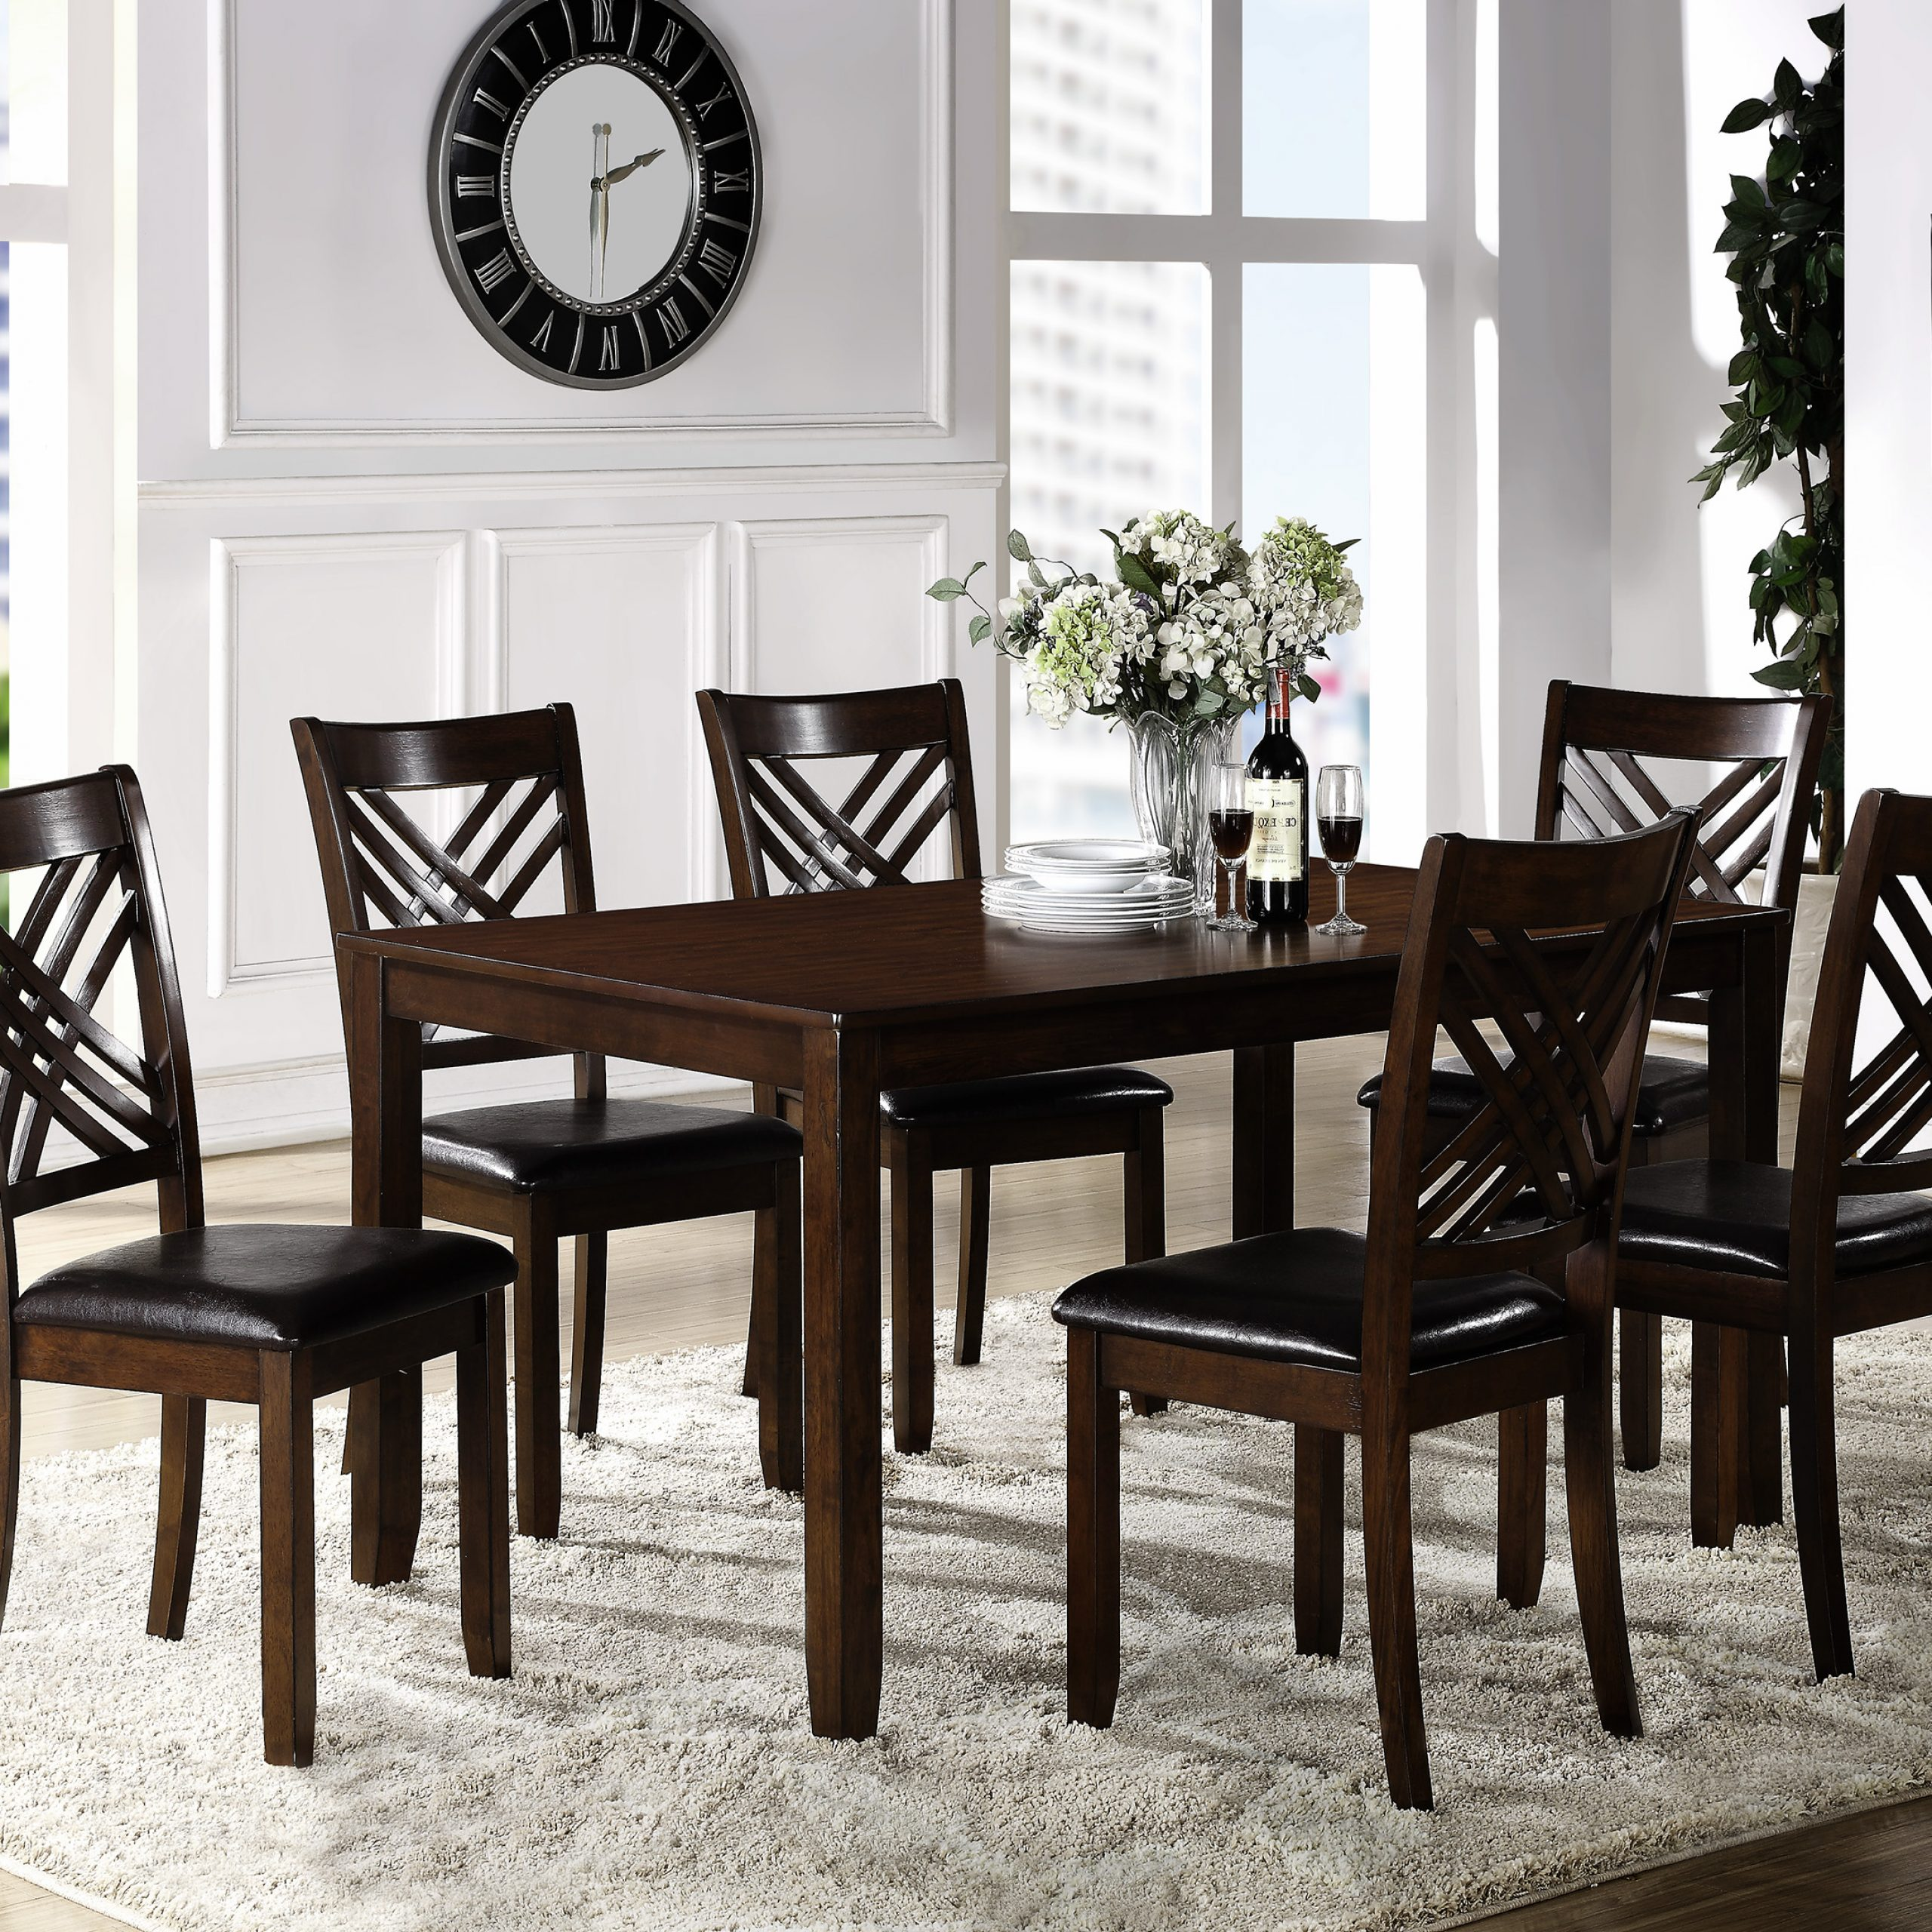 dining room table six chairs